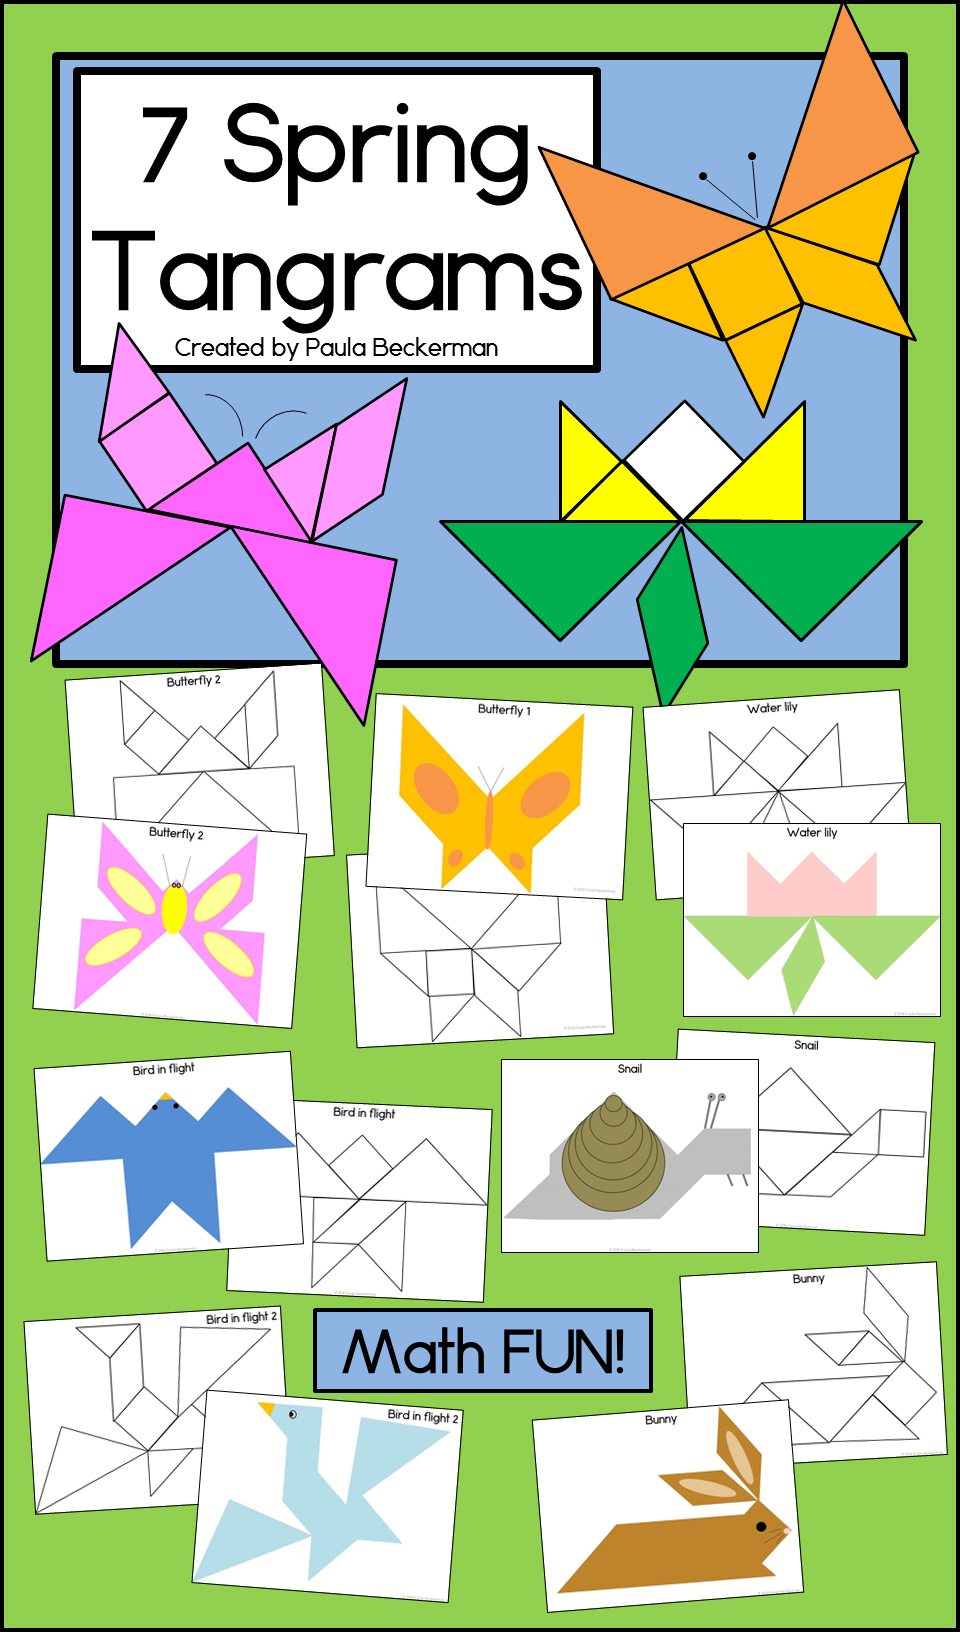 small resolution of Spring themed tangrams for fun math learning with shapes. Includes 2  butterflies